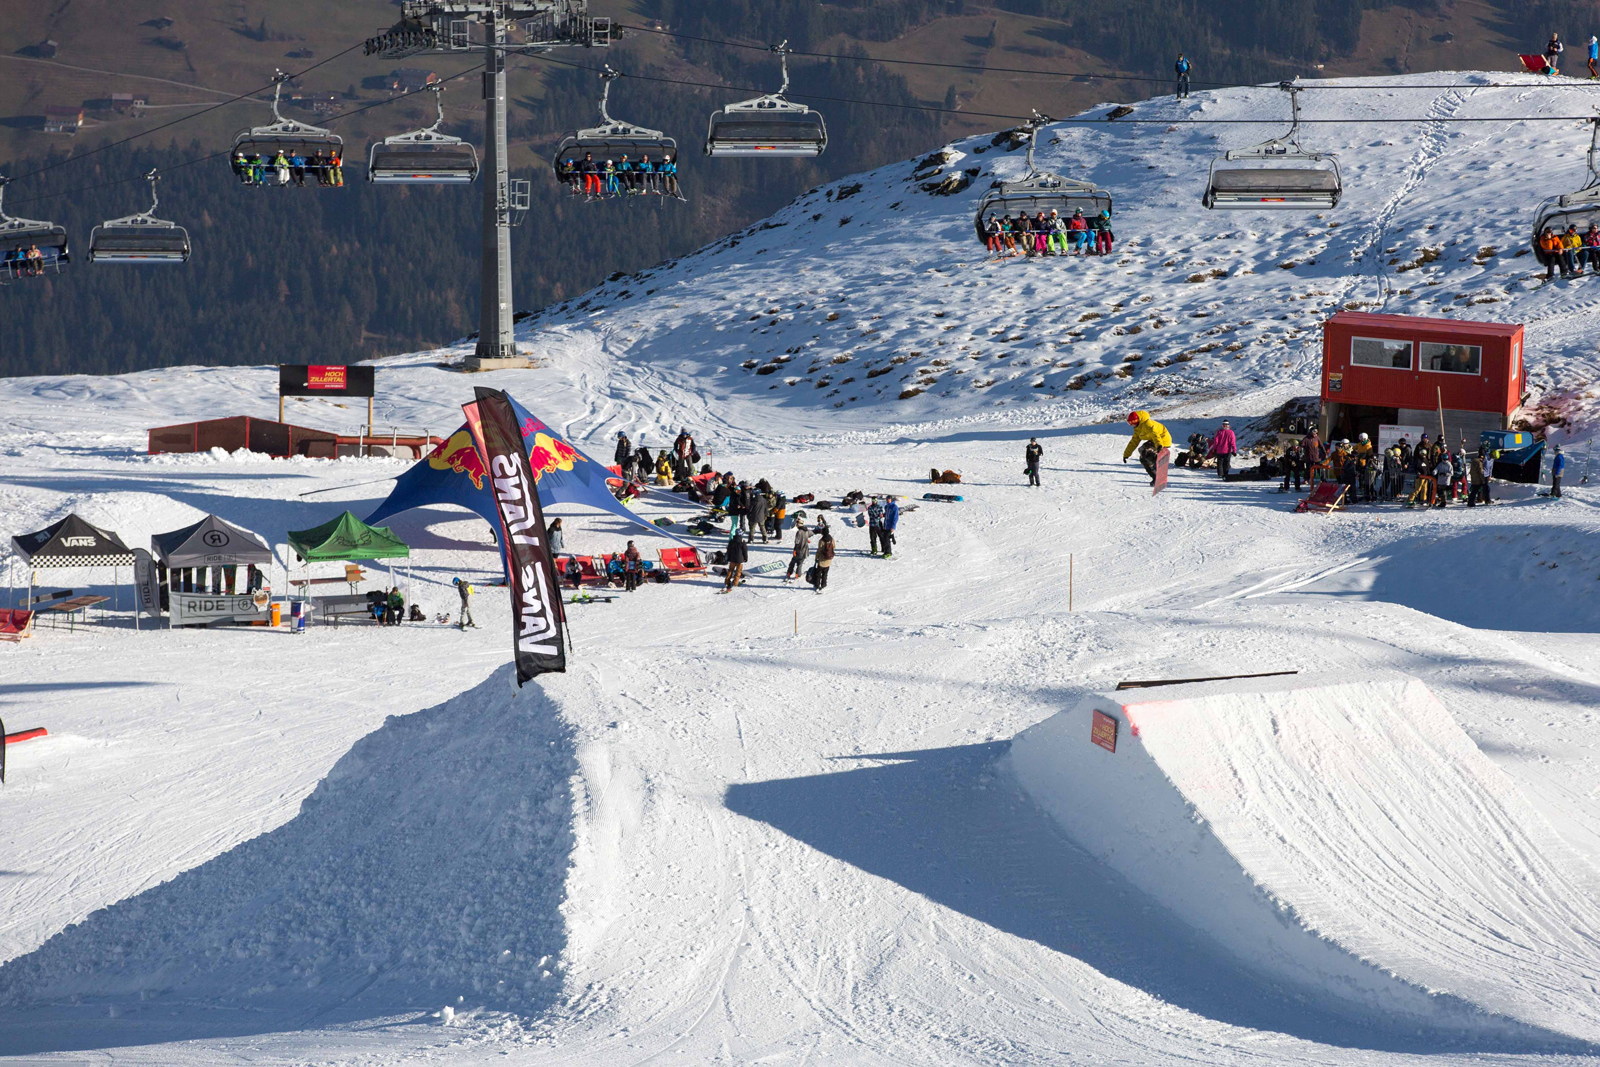 Zillertal VÄLLEY RÄLLEY hosted by Ride Snowboards 2015 / 2016 - Foto: Roland Tscholder